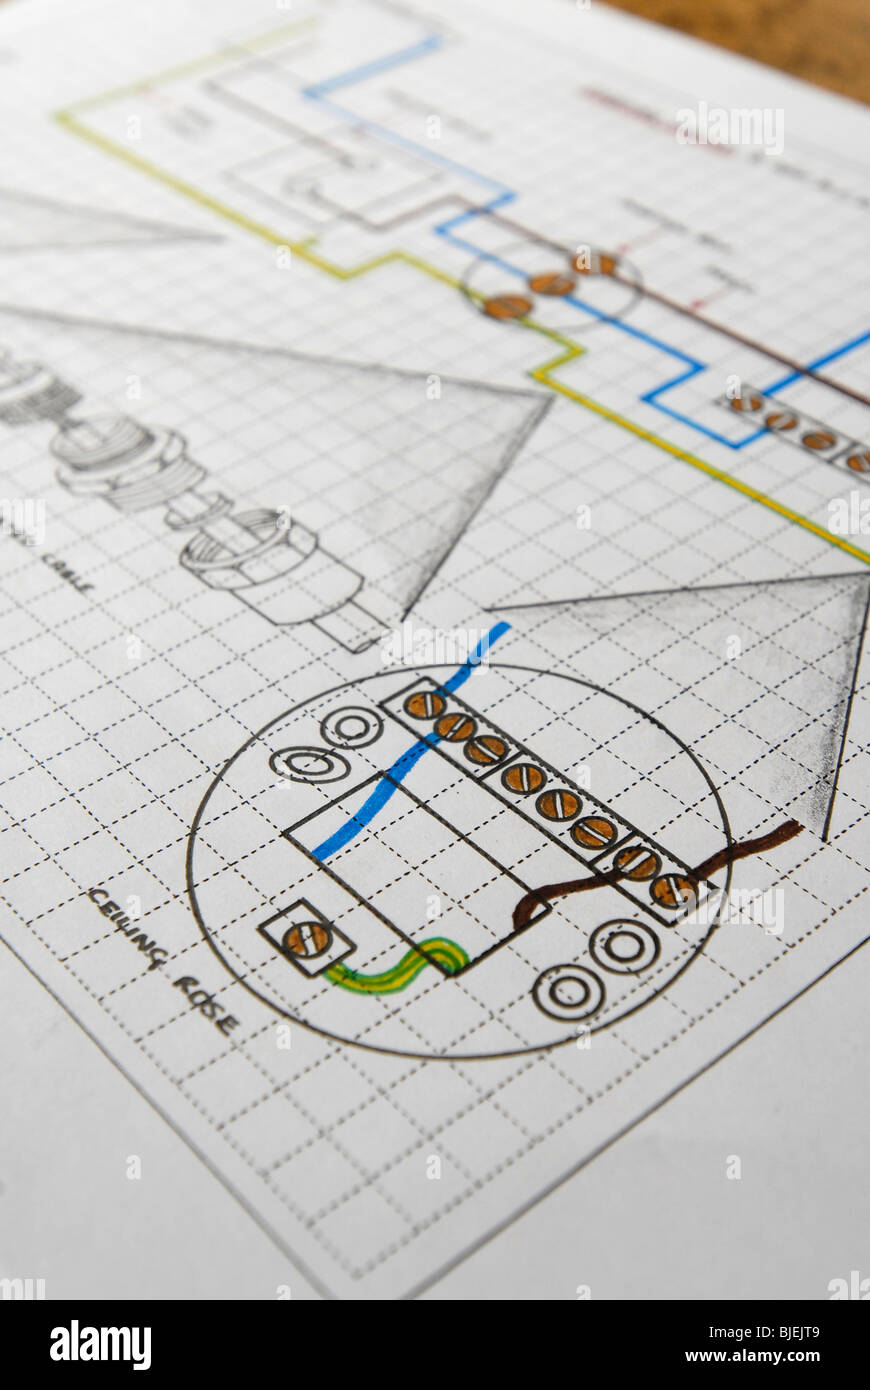 medium resolution of technical drawing of electrical ceiling rose wiring diagram